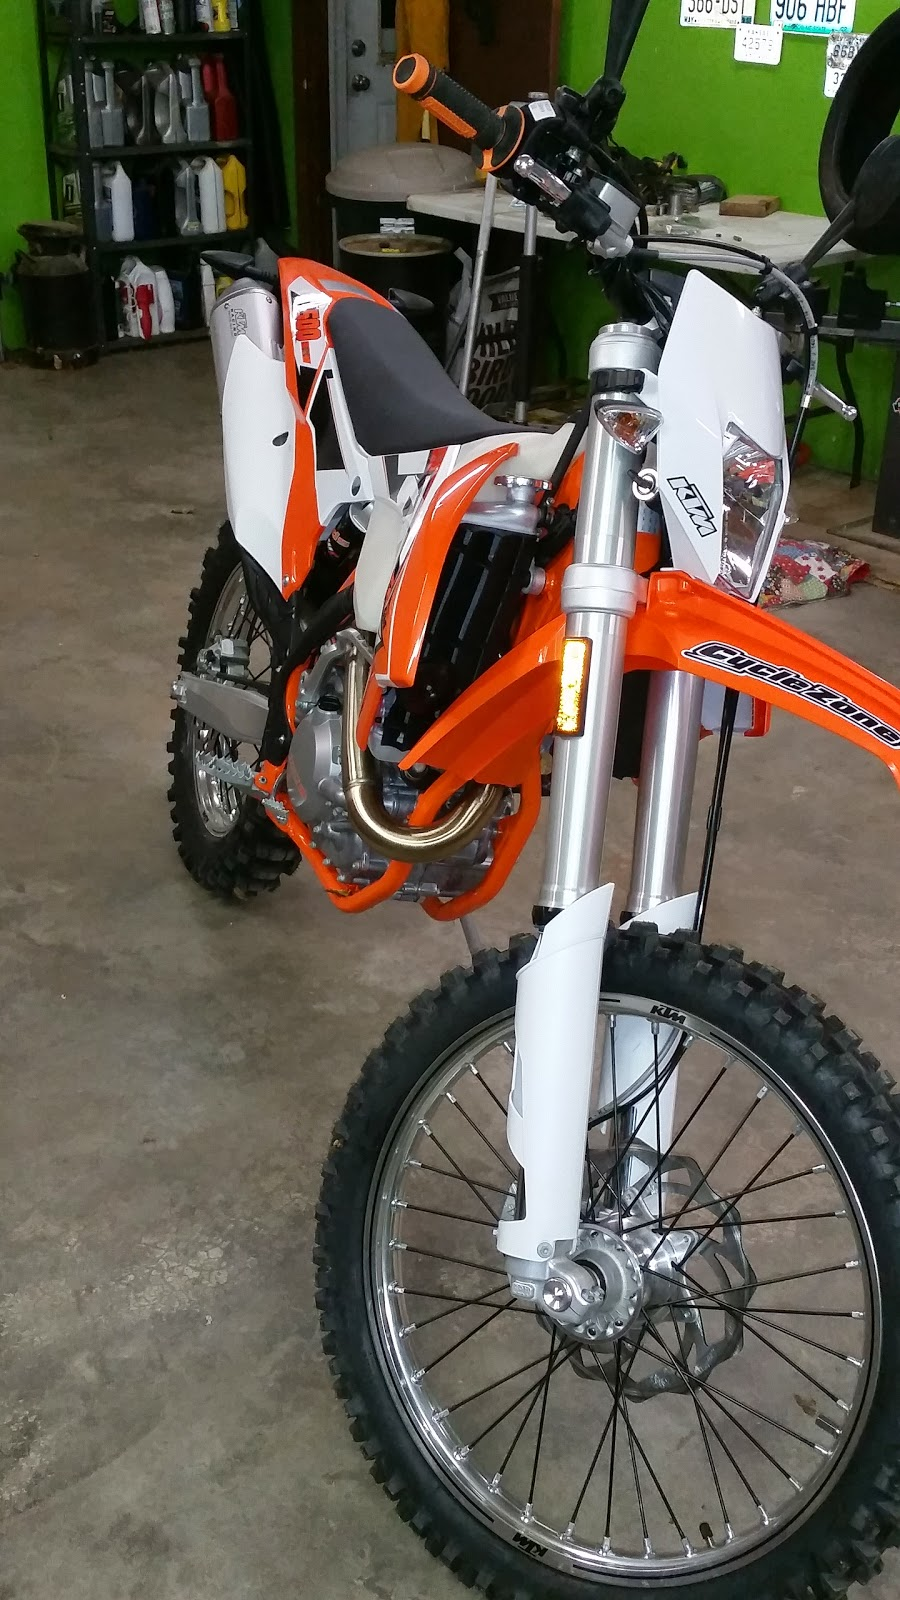 Ktm 500 Exc Service Manual Wiring Diagram Libraries Kenwood Kdc Hd942u Libraryktm 2015 Valve Check This Was A Very